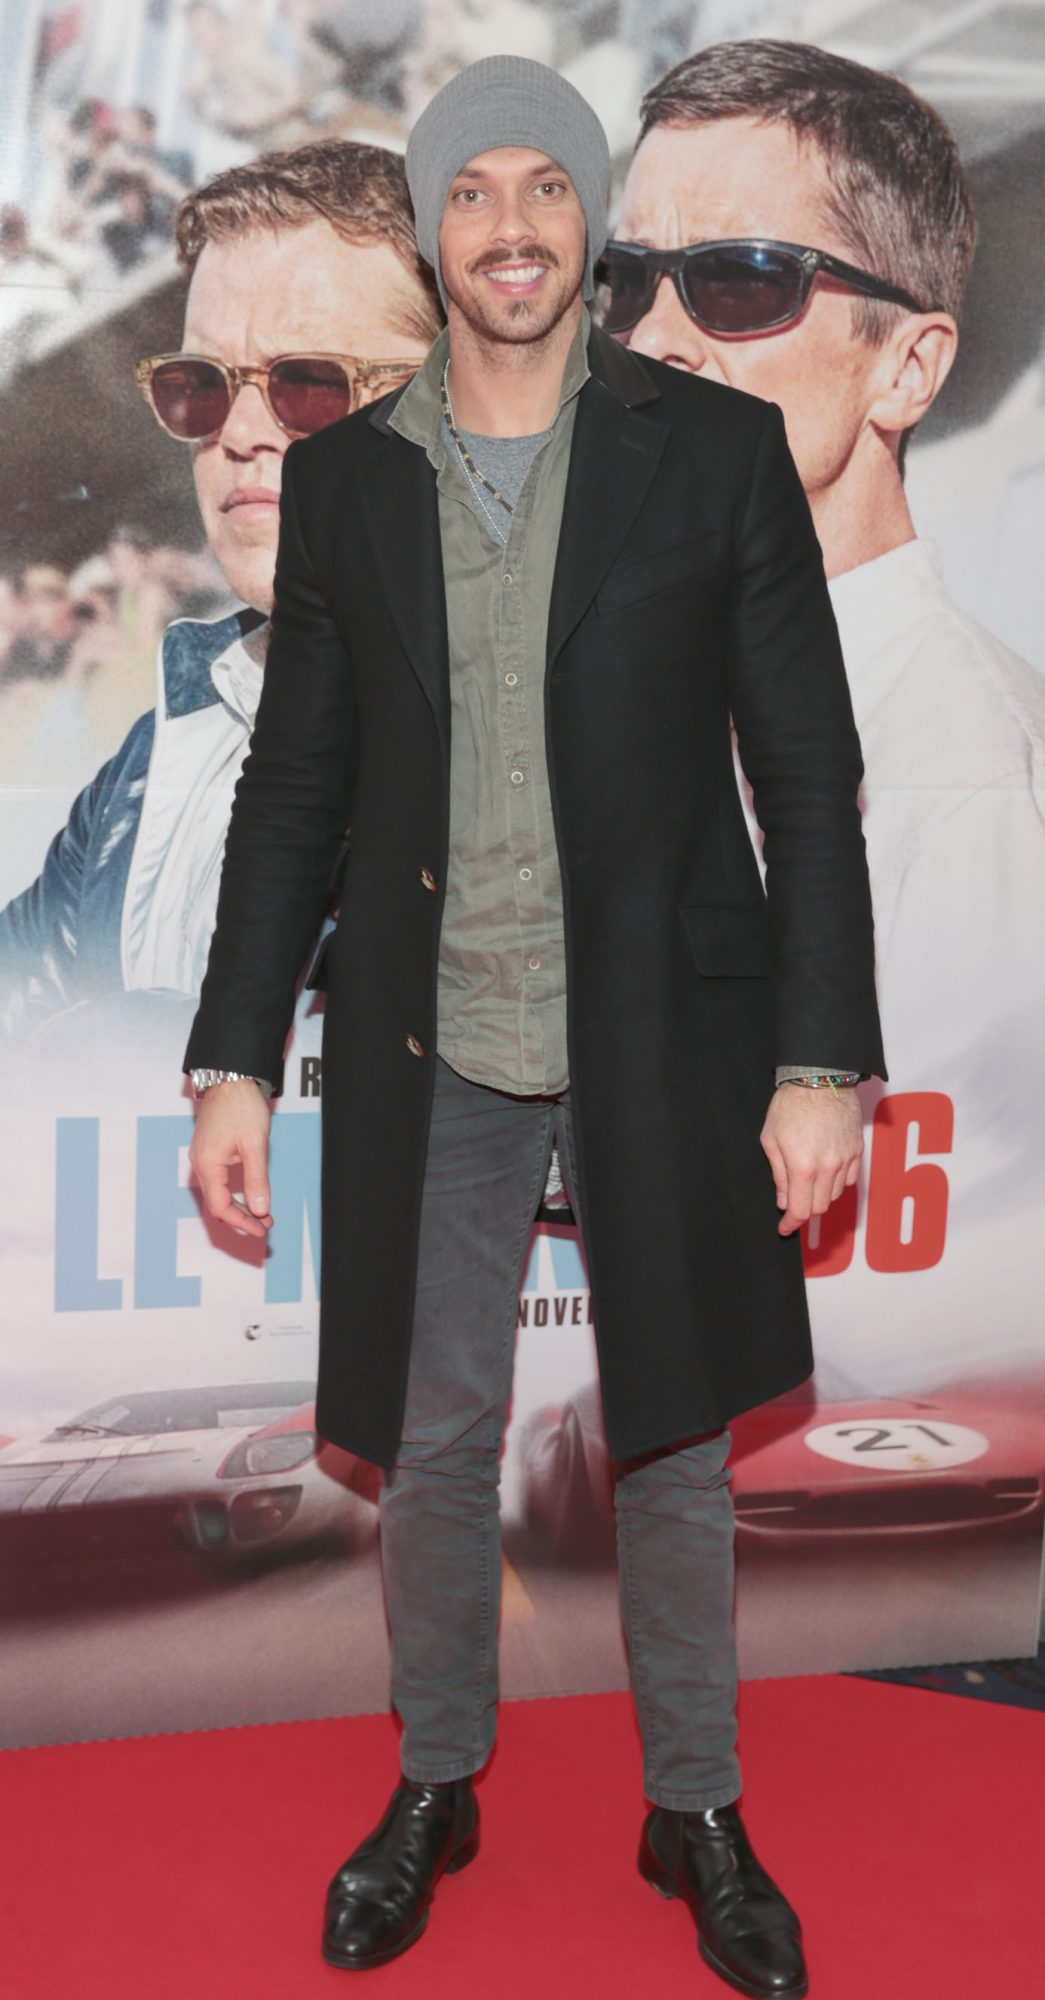 Carl Shaaban pictured at the special preview screening of Le Mans '66 at Cineworld, Dublin. Photo: Brian McEvoy.